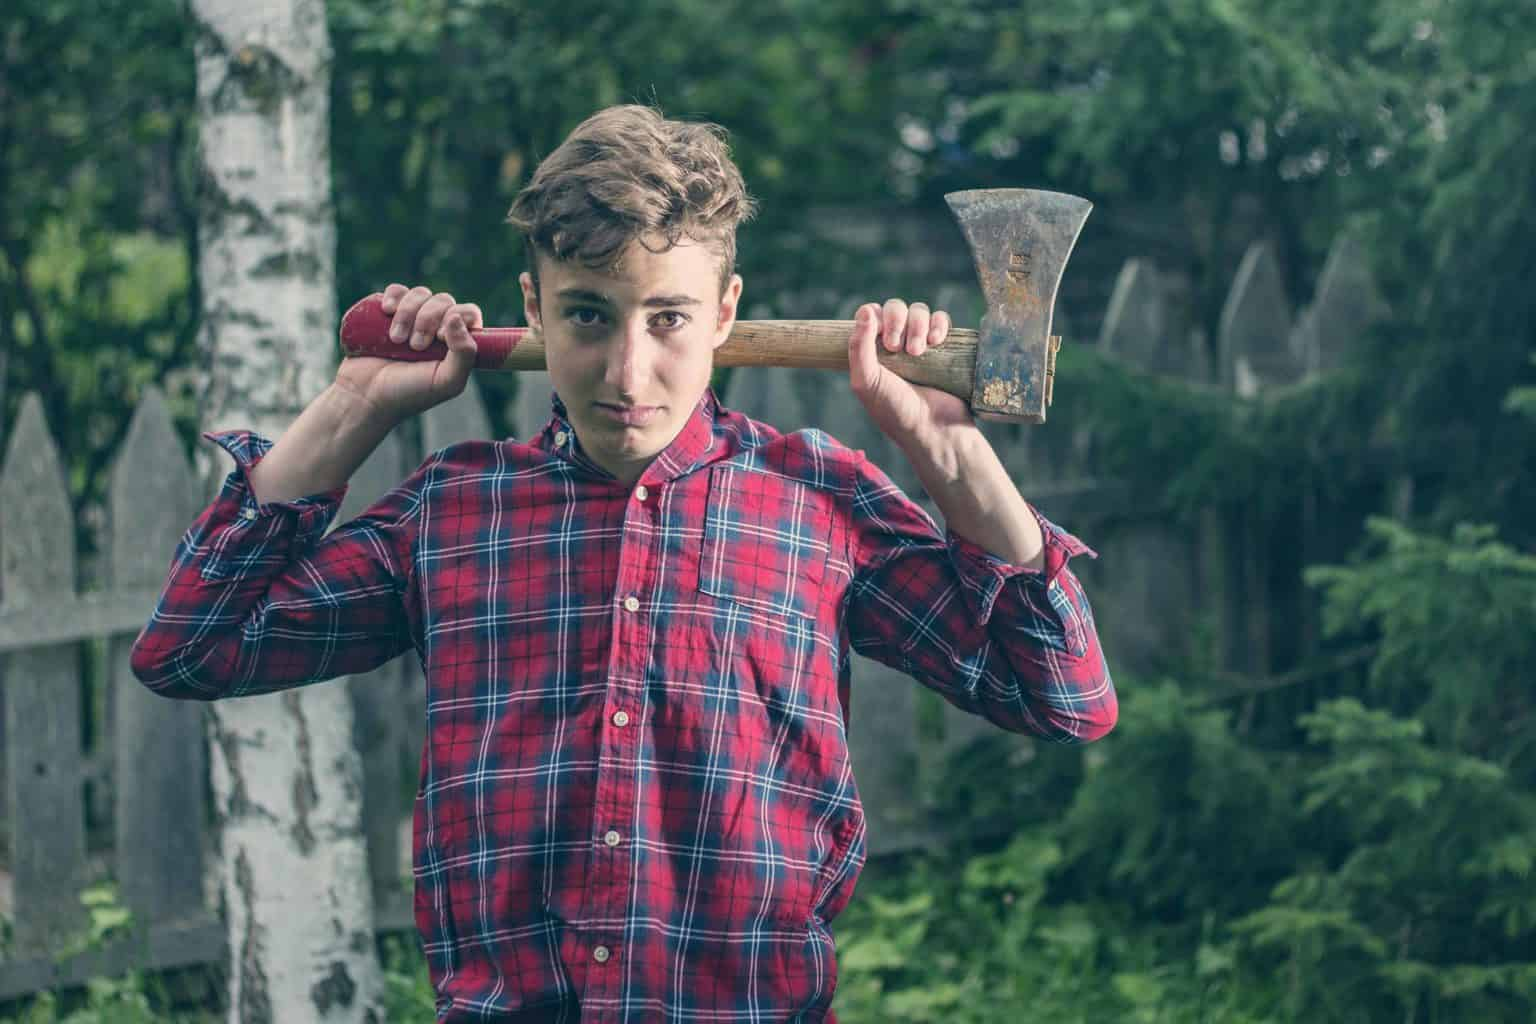 Young man holding an axe